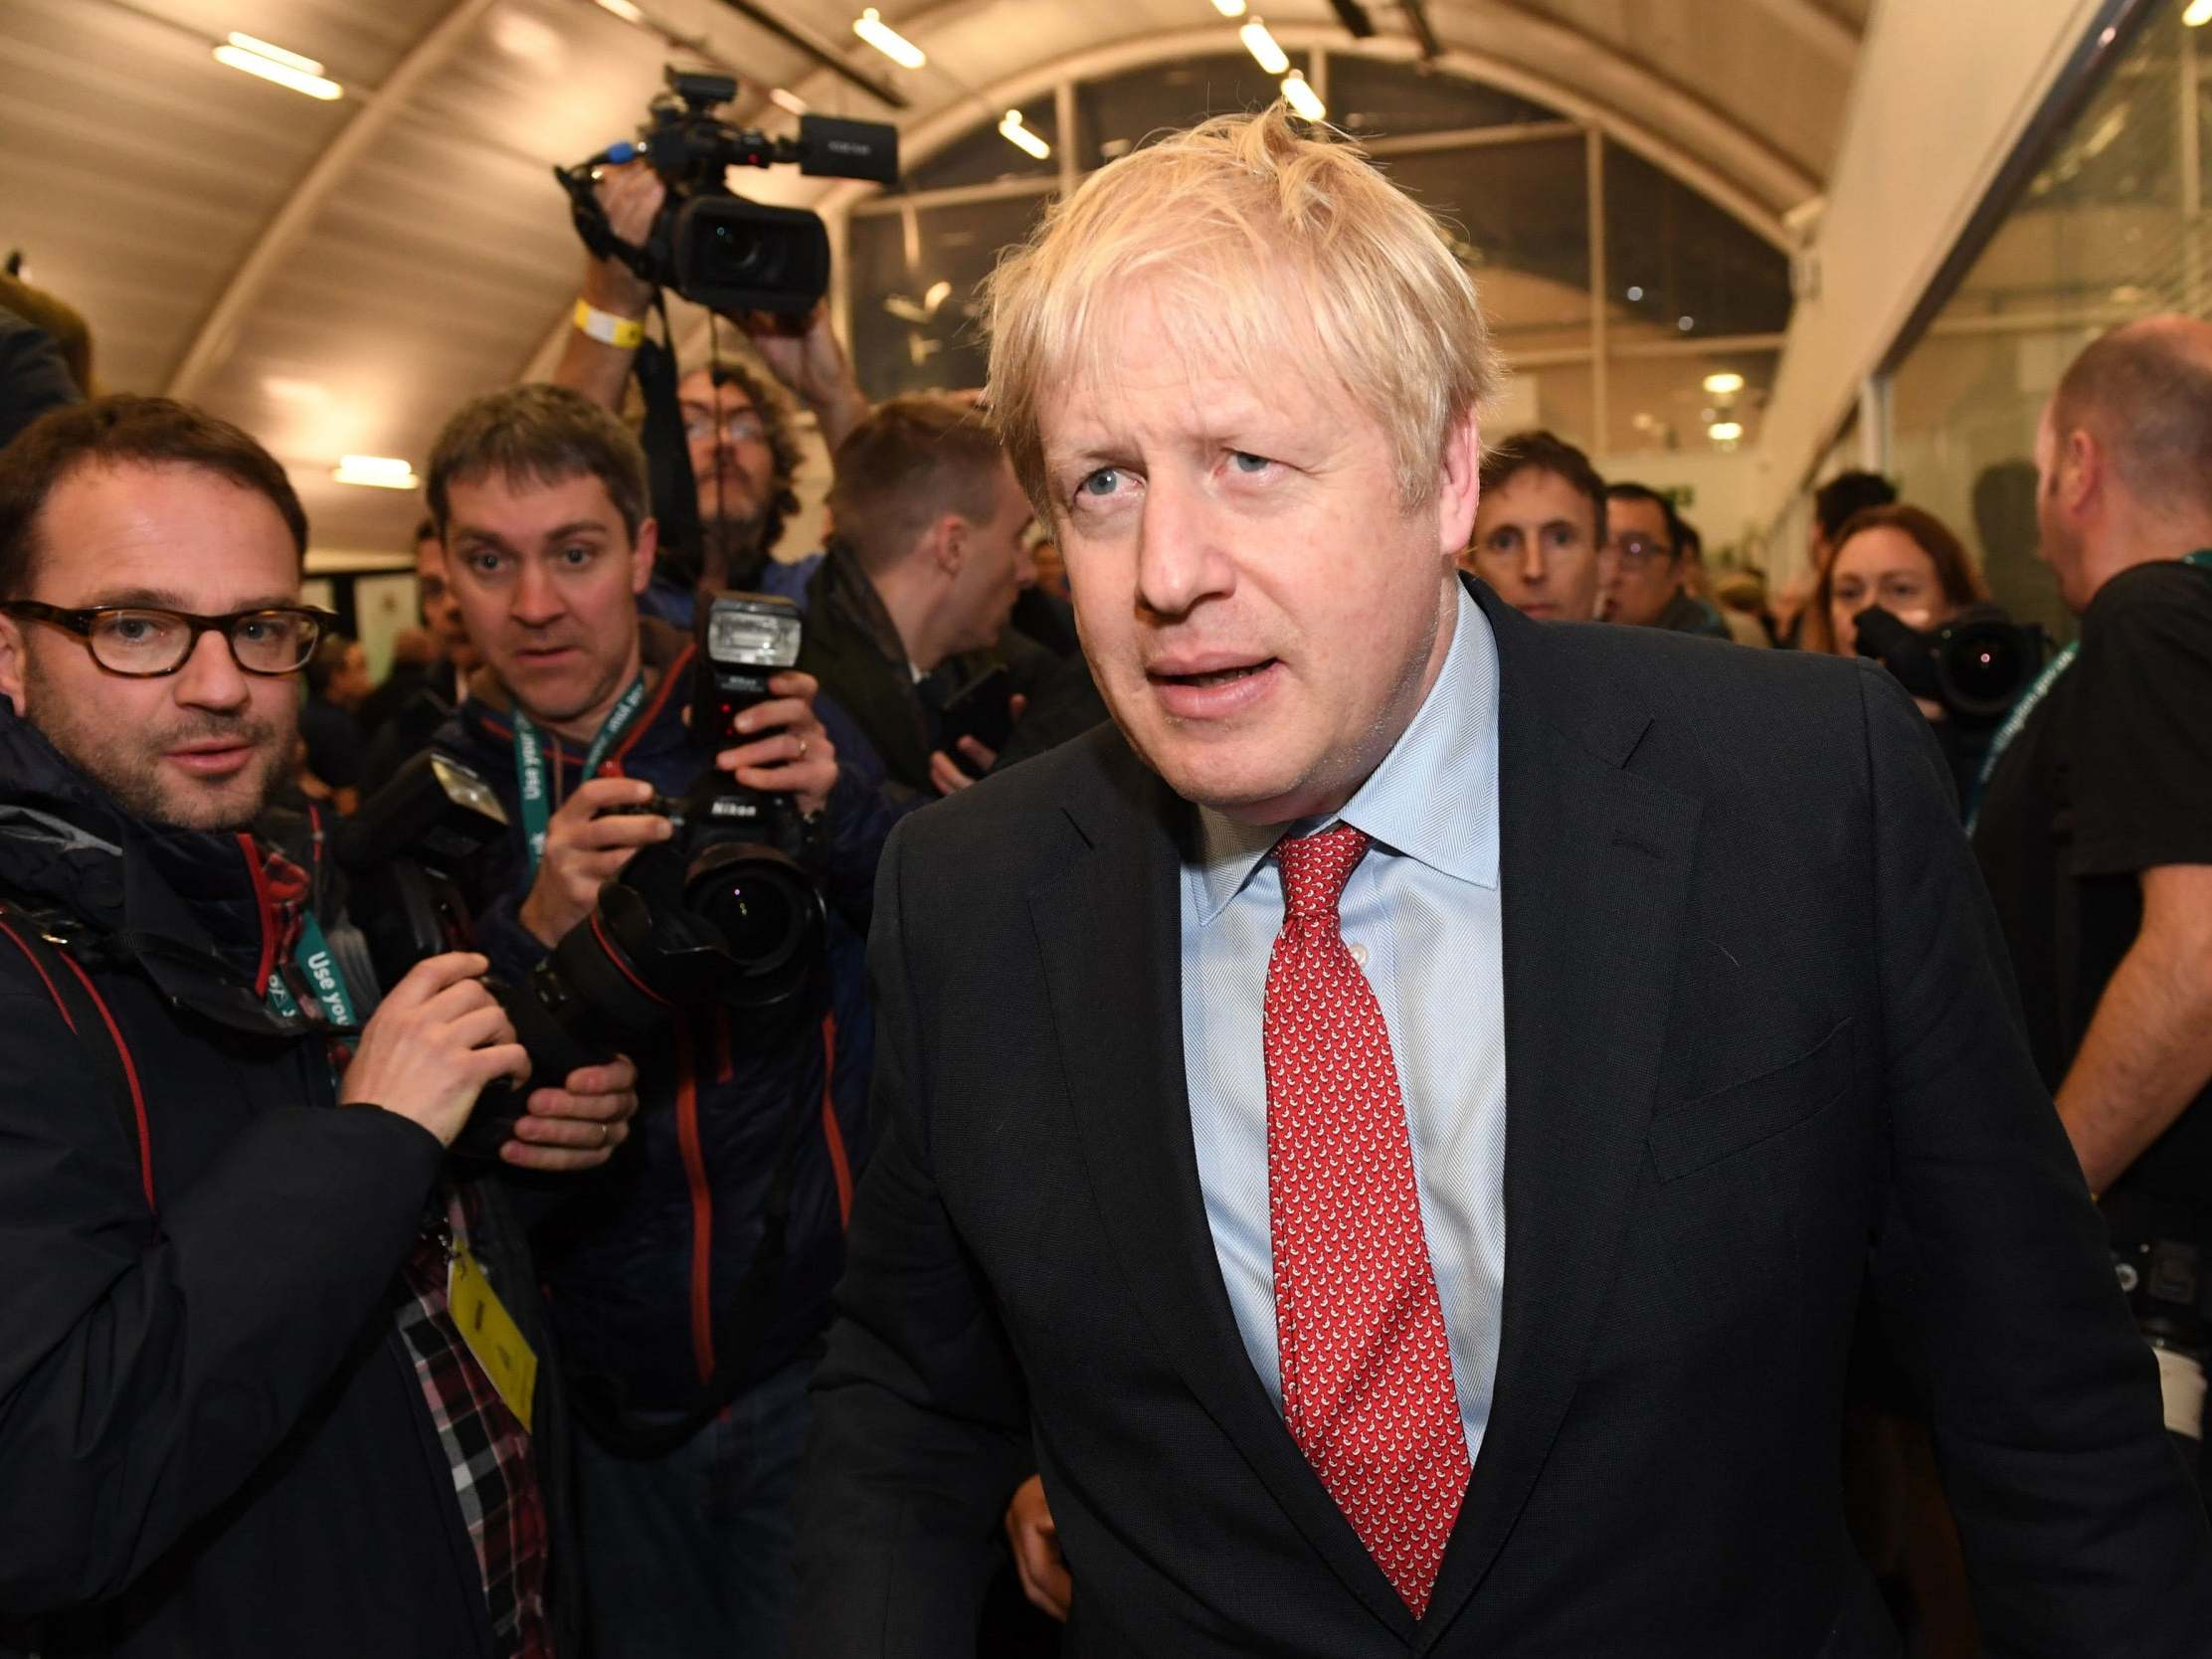 Don't panic, there are reasons for optimism now that Boris Johnson has his majority